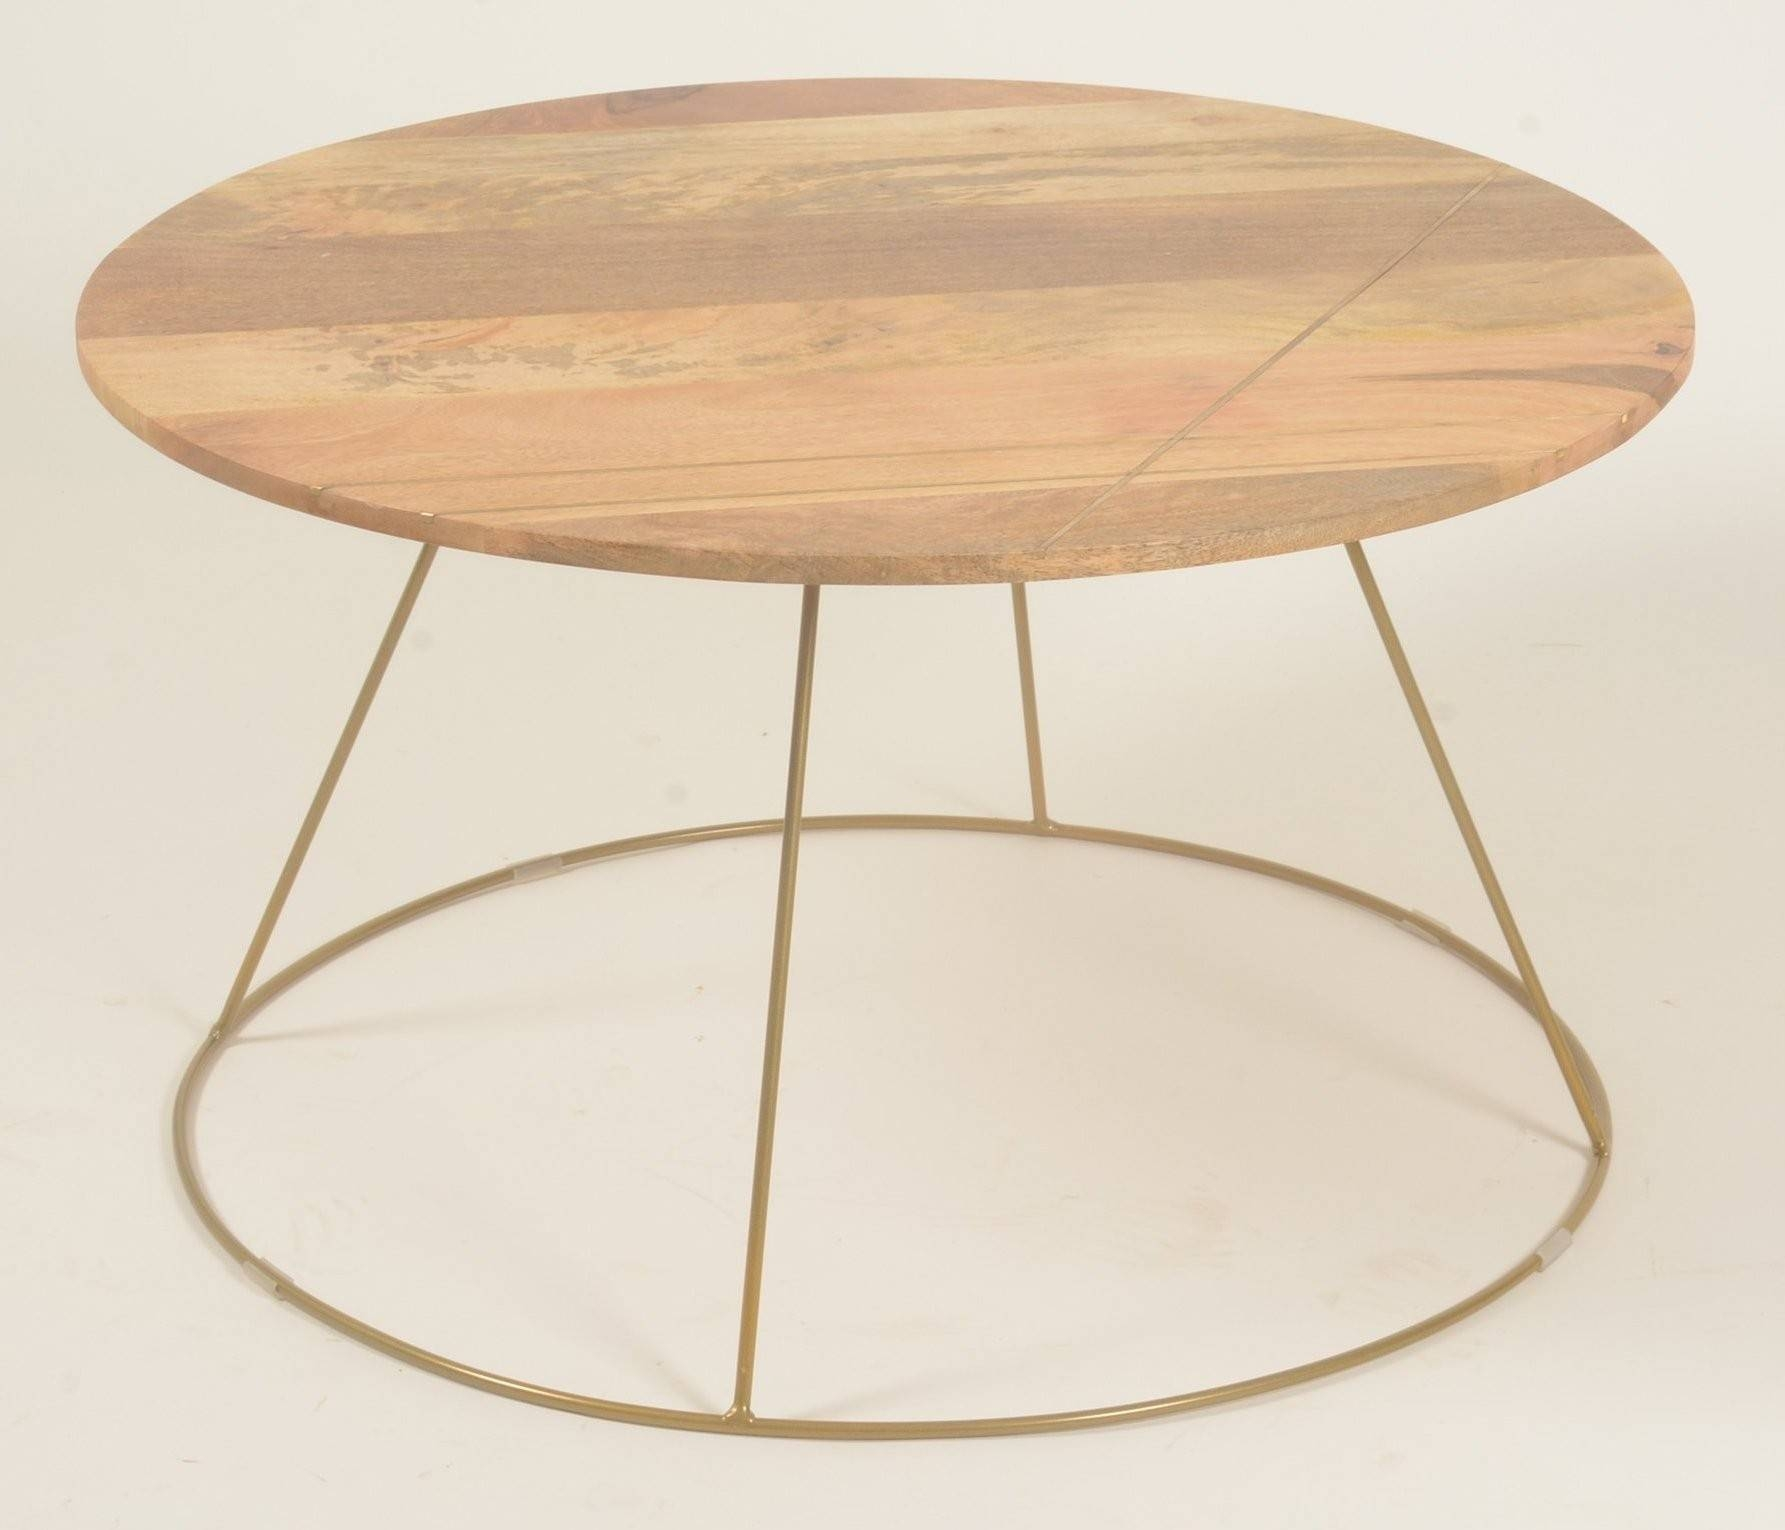 Large Coffee Table - Retro / Vintage Style, Solid Mango Wood pertaining to Mango Wood Coffee Tables (Image 13 of 30)